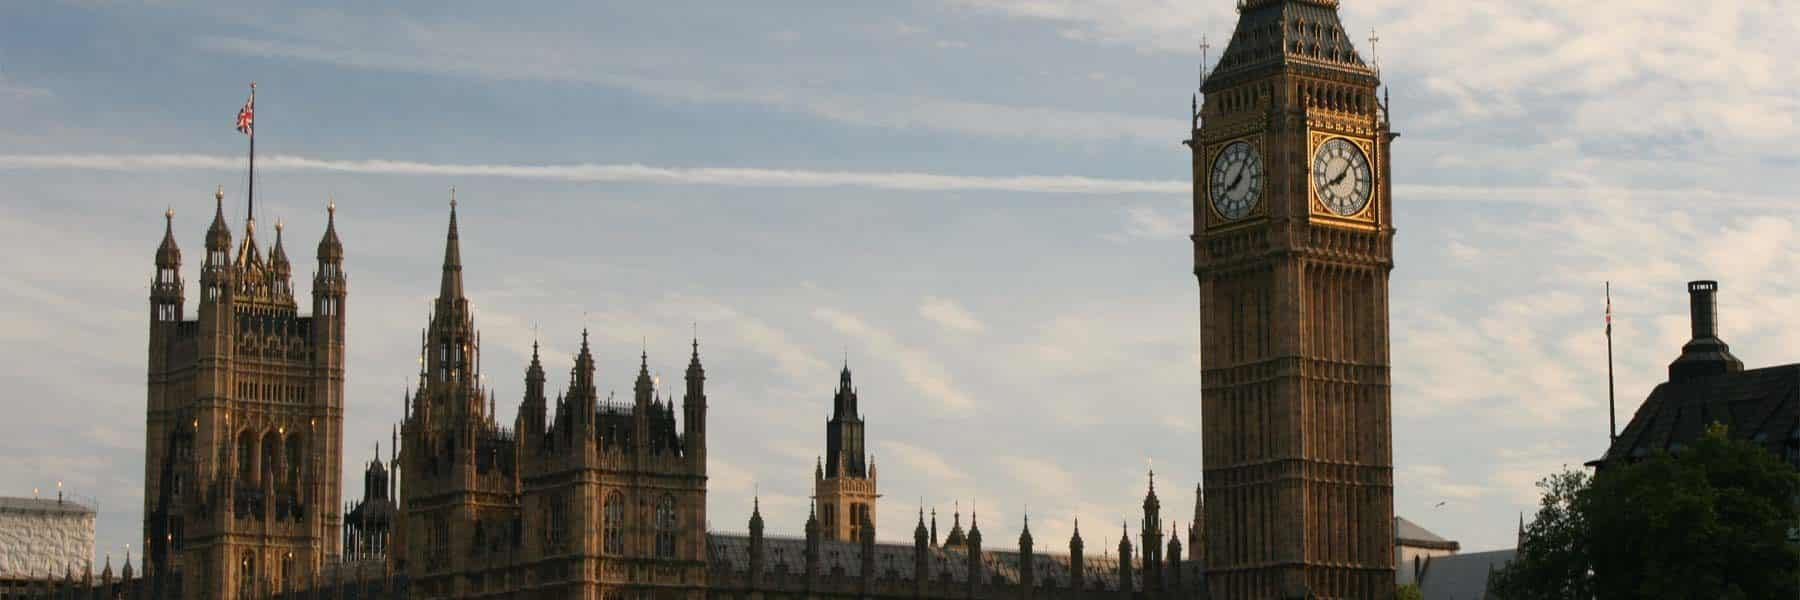 The New Palace of Westminster (Houses of Parliament)